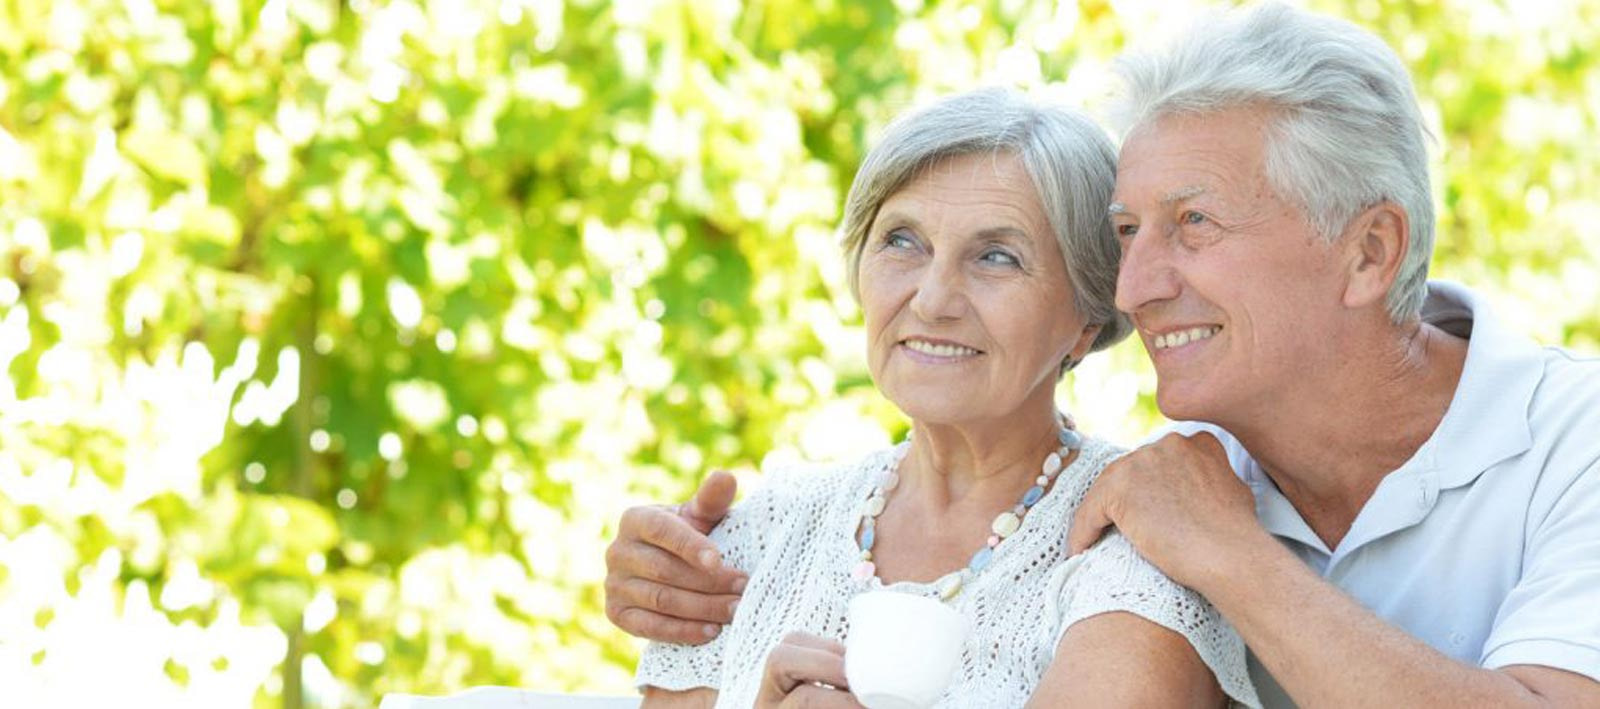 Hospice myths can keep families from receiving needed care